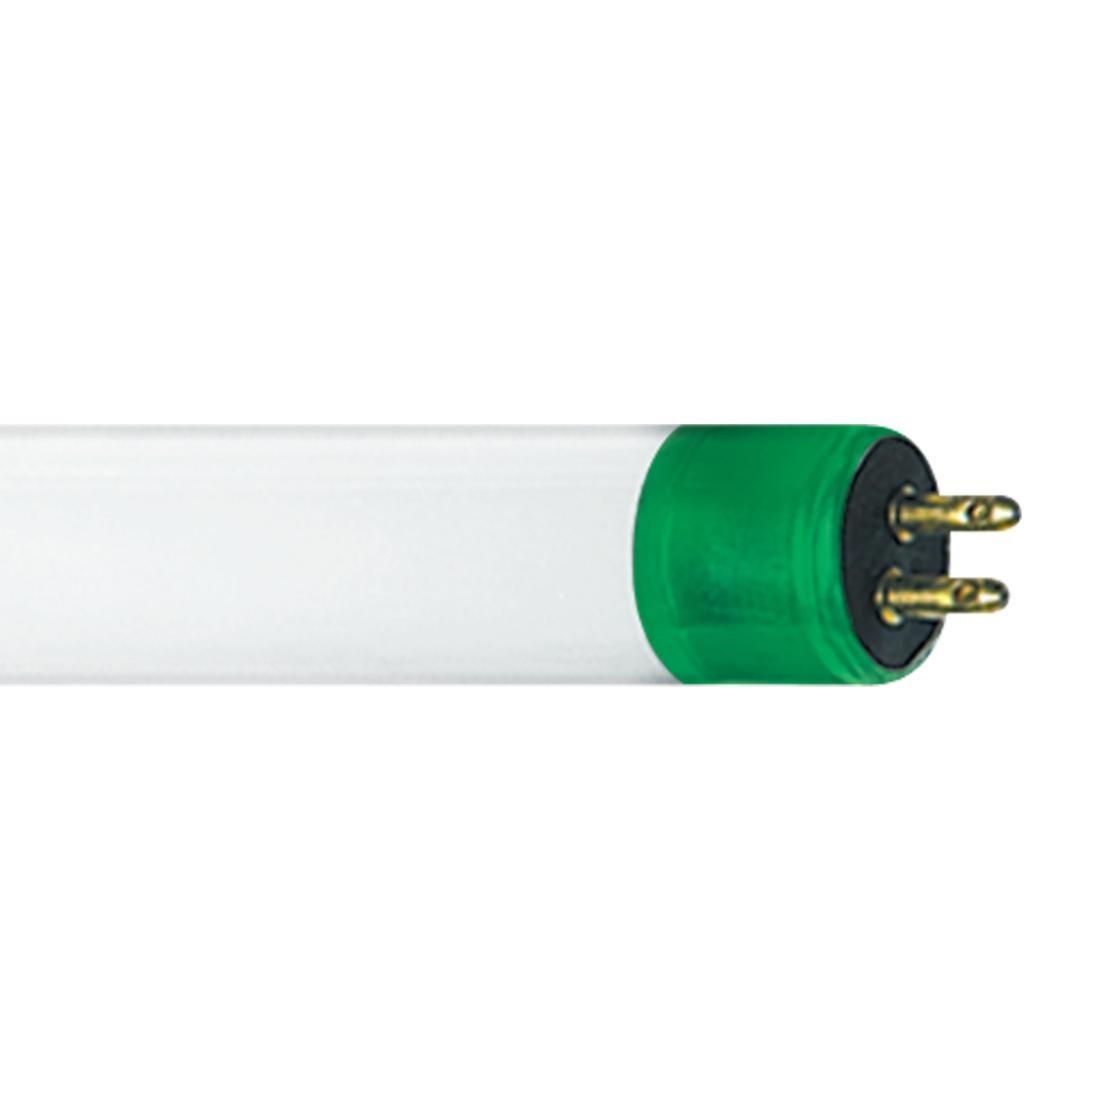 "Philips 54 Watt 46"" T5 Linear Fluorescent 4100K 85 CRI Miniature Bipin (G5) Base High Output Tube (F54T5/841/HO/ALTO)"